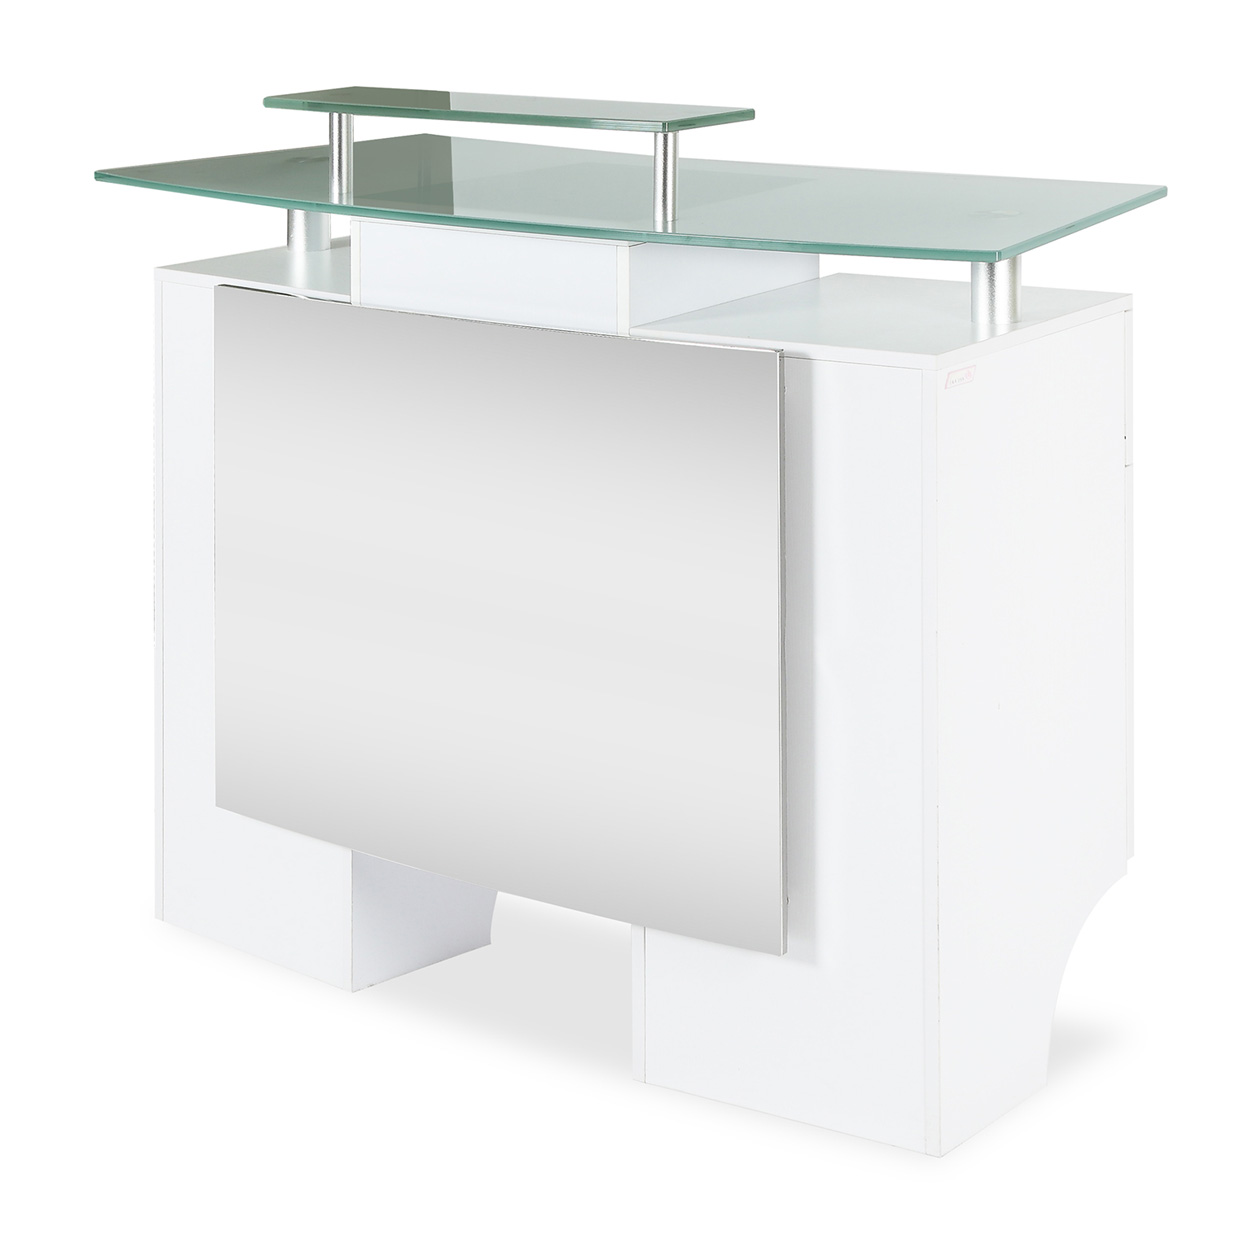 Glass Top Reception Desk alternative product image 1